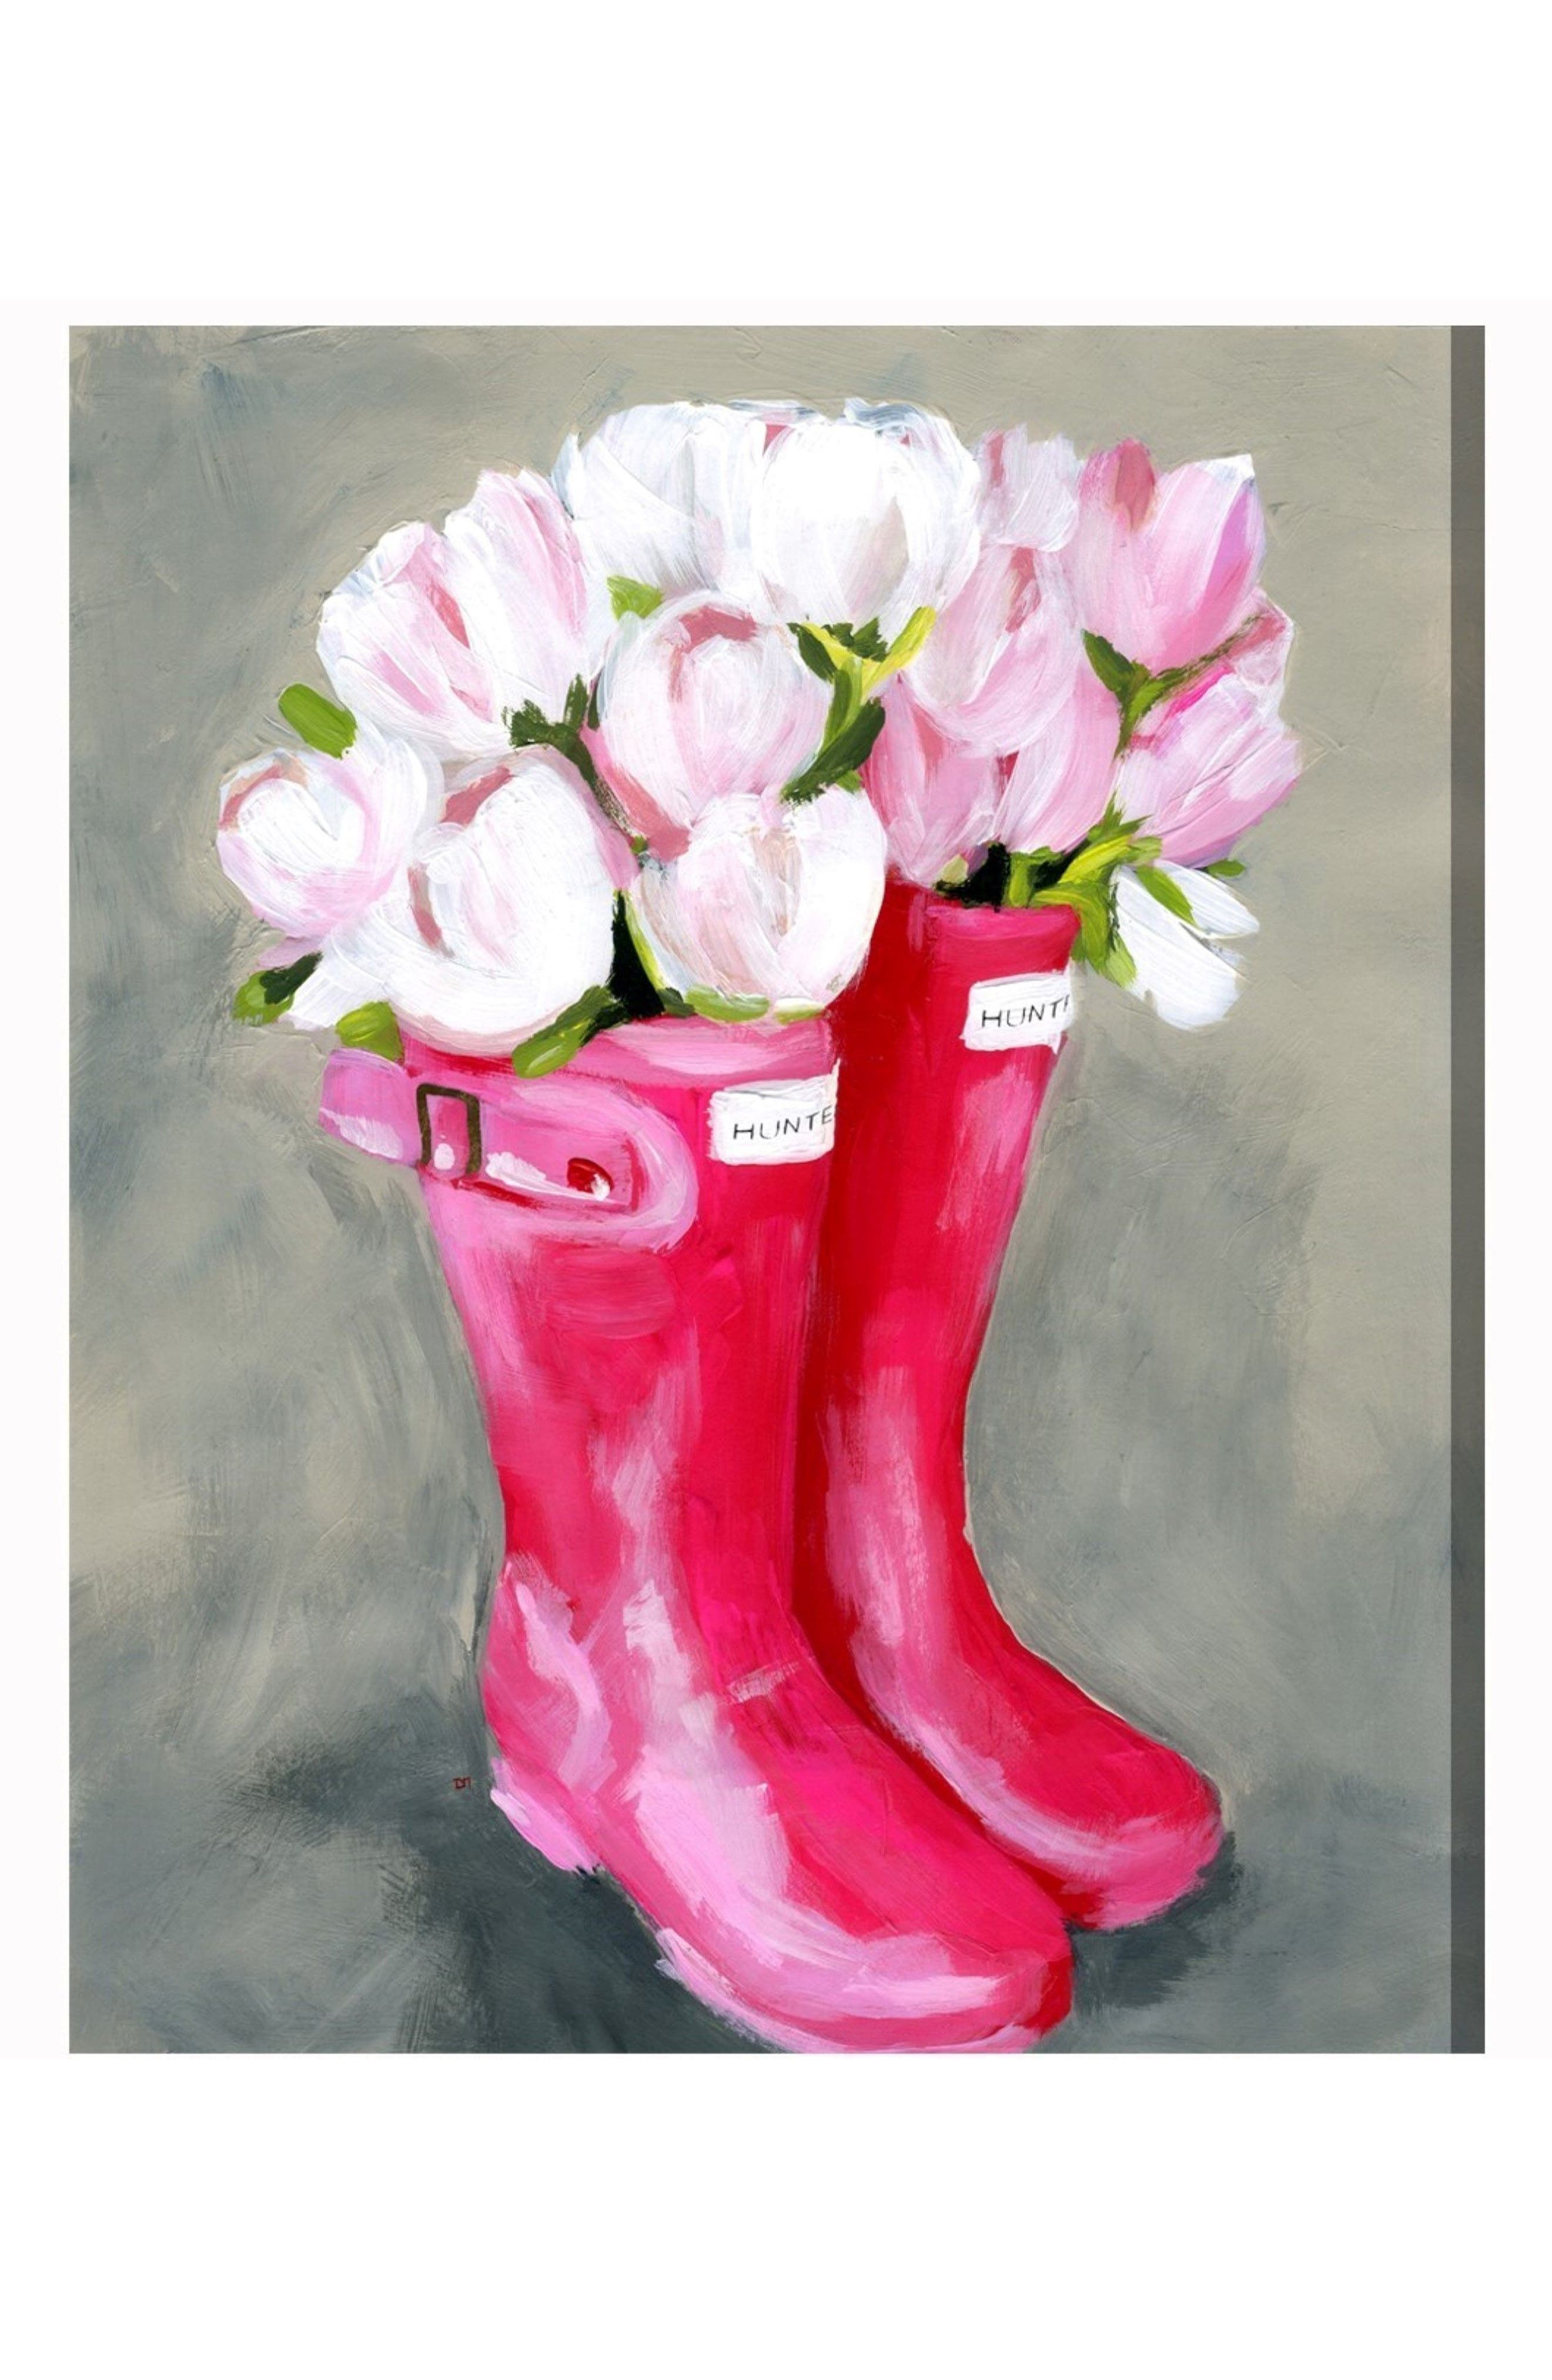 Alternate Image 1 Selected - Oliver Gal Tulips Rain Boots Canvas Wall Art